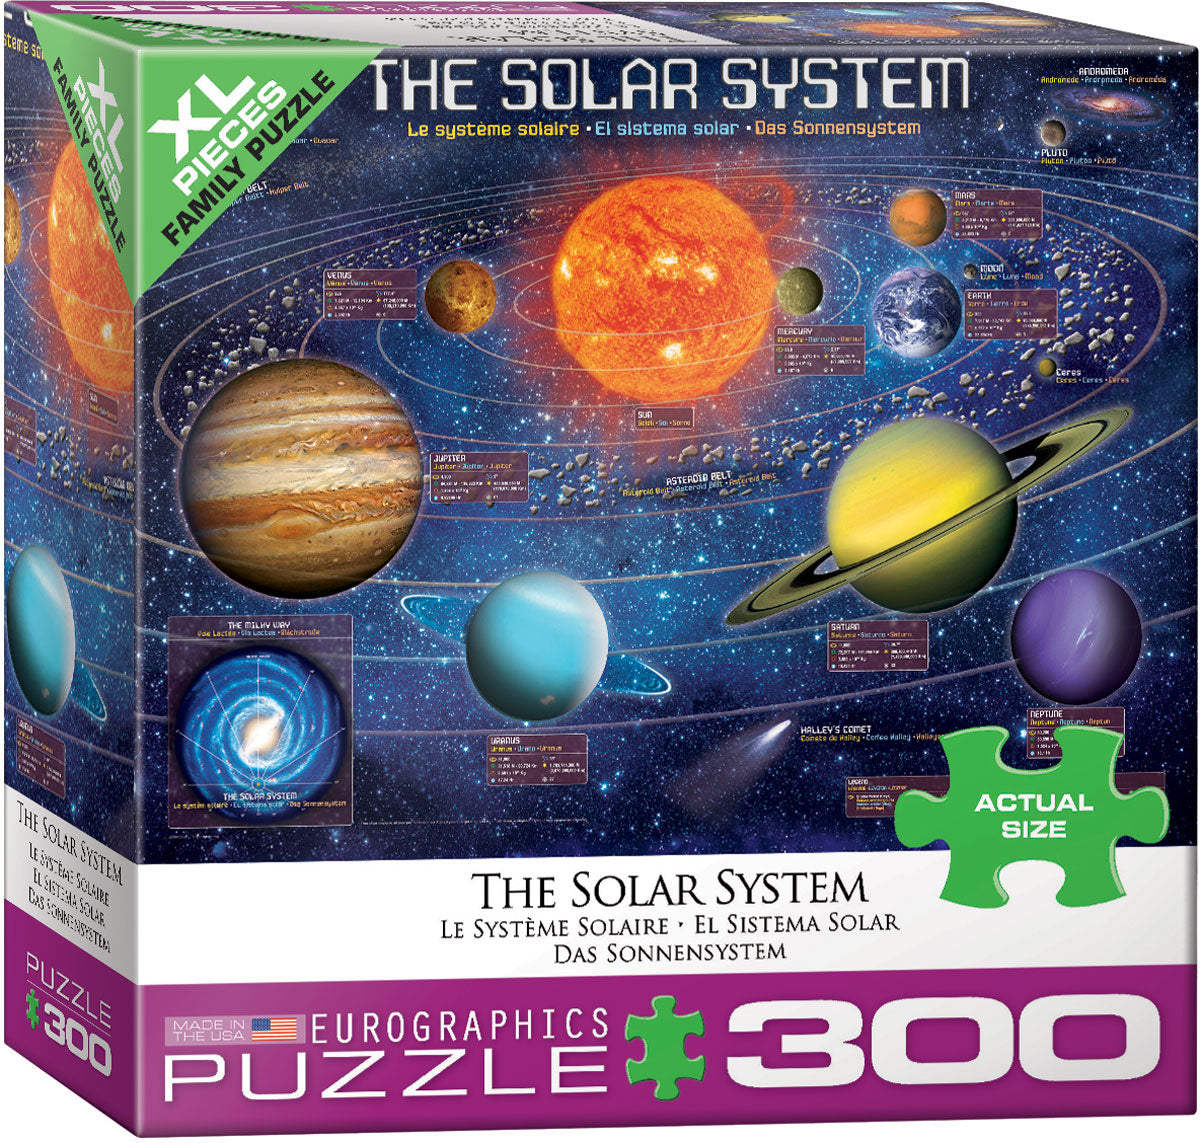 The Solar System 300 Piece Puzzle with XL Pieces - Quick Ship - Puzzlicious.com